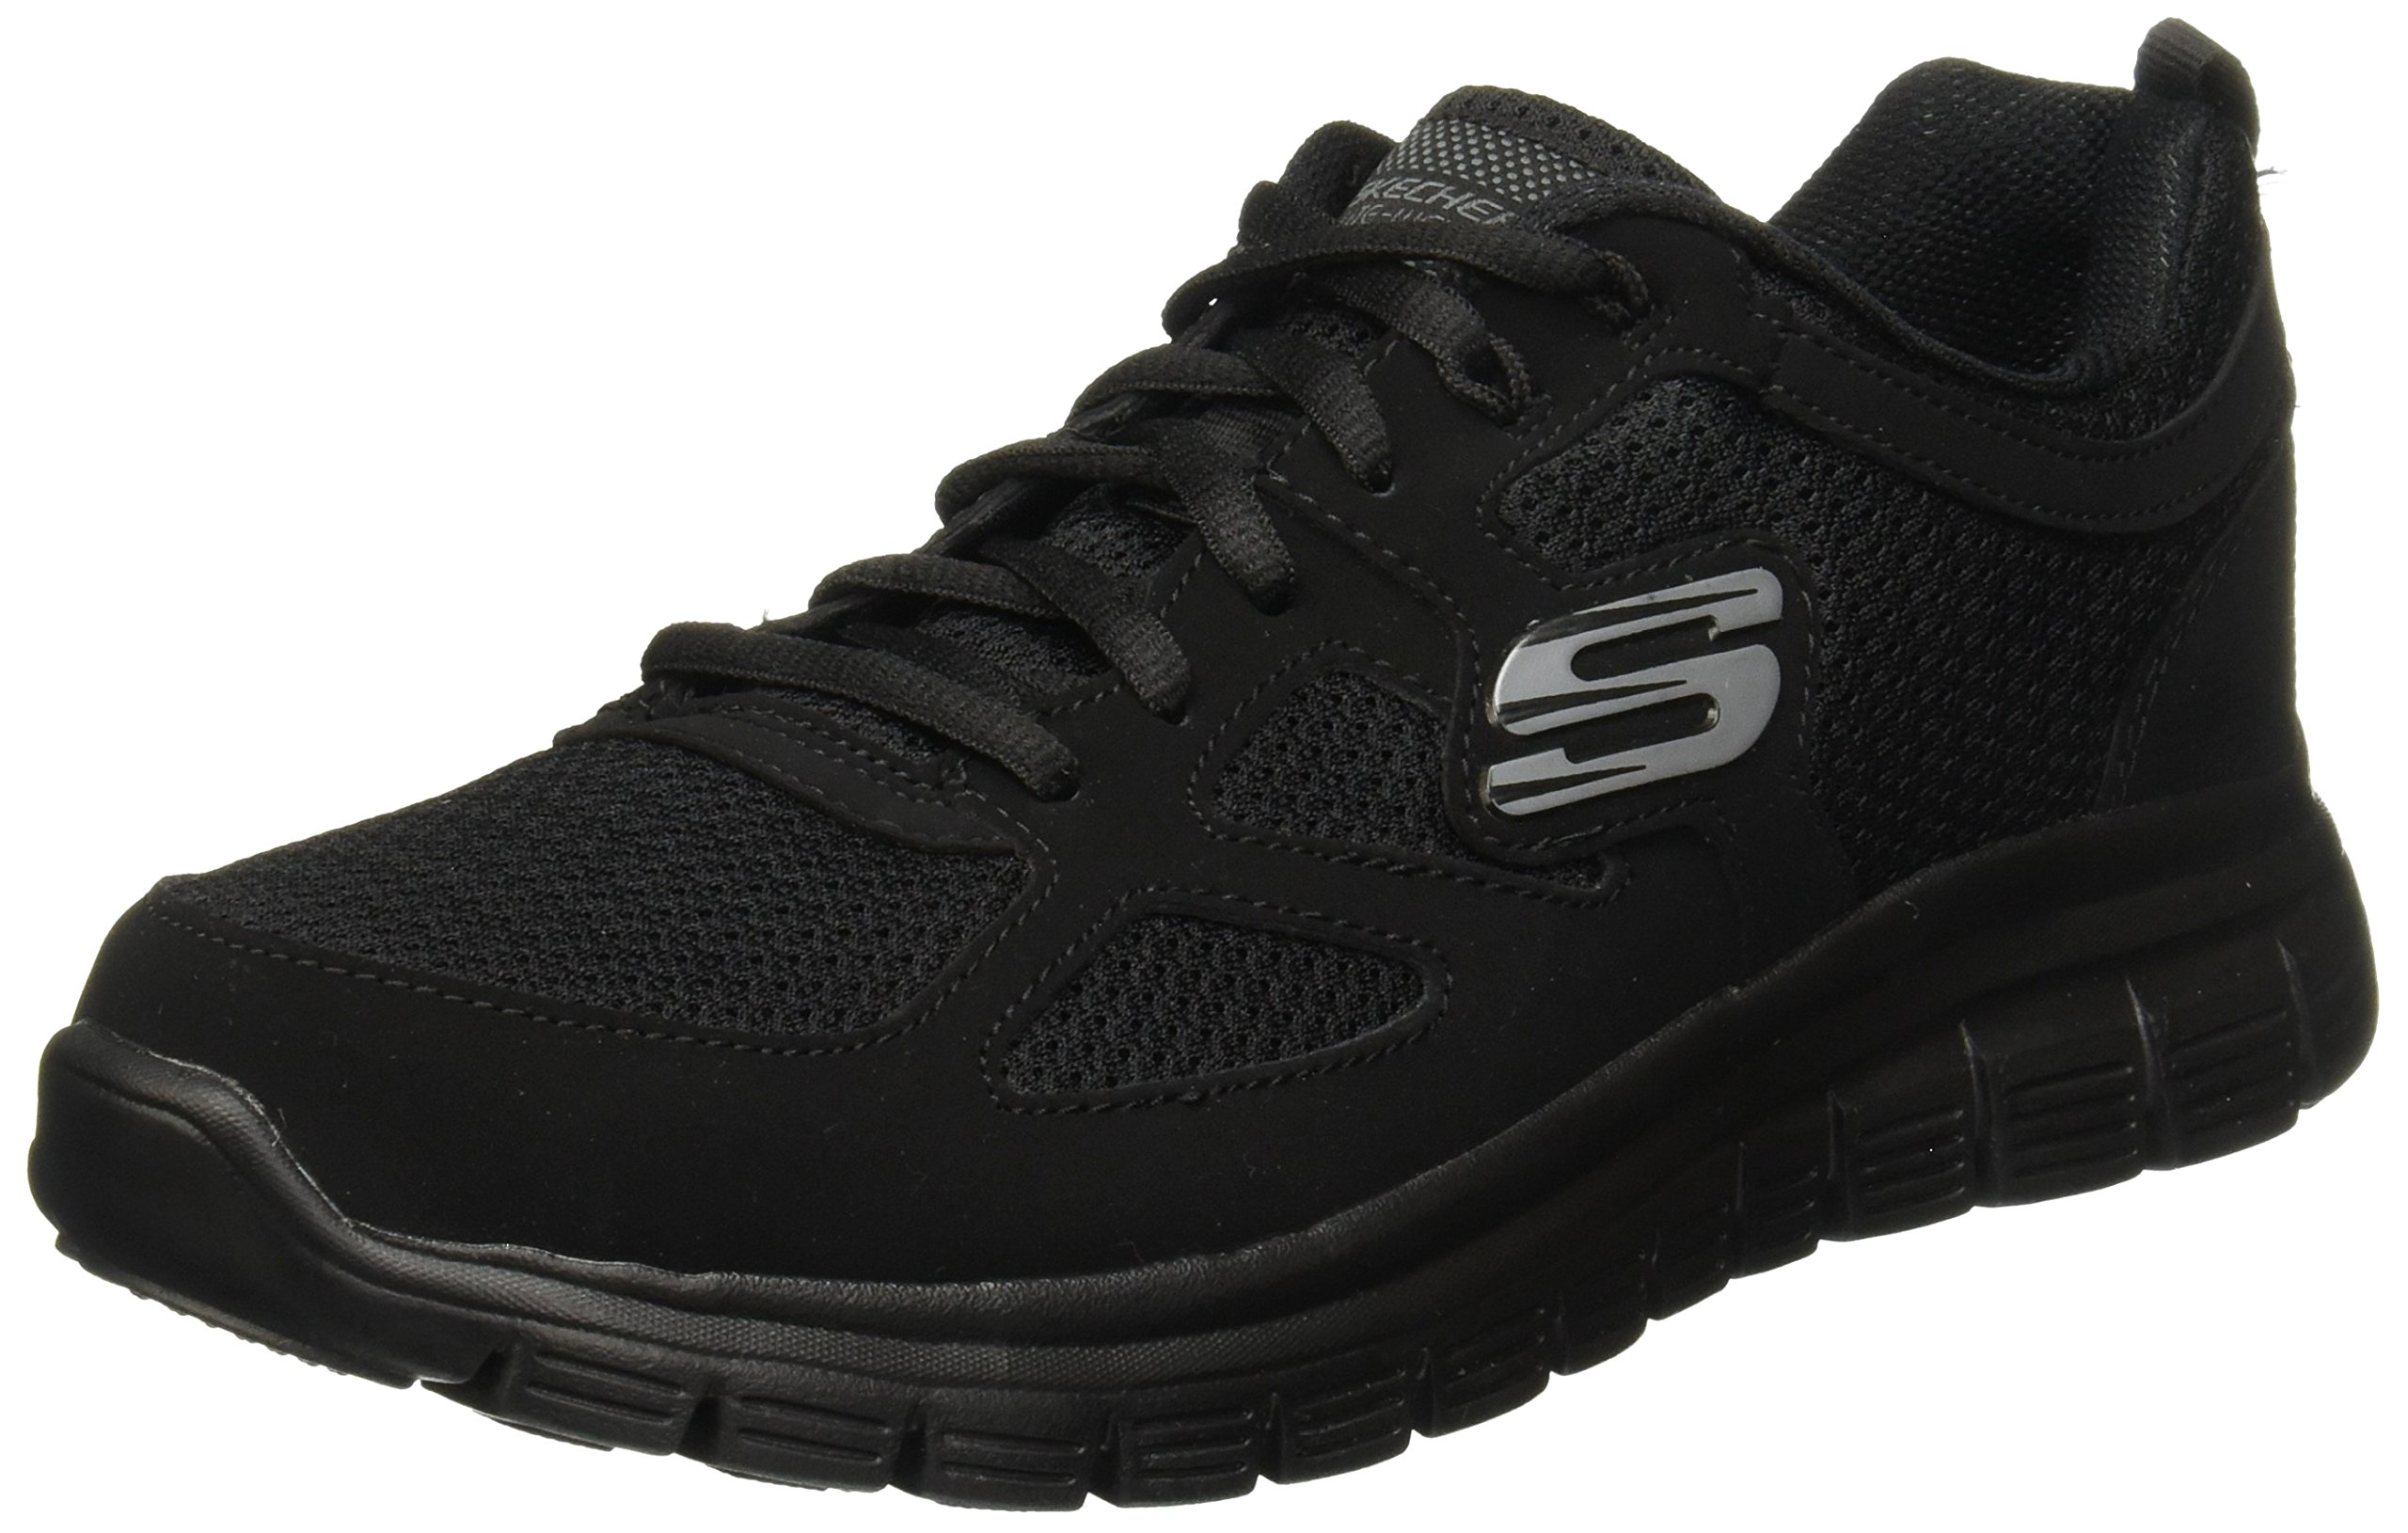 14da128c79 Skechers New Mens Gents Black Burns Agoura Lace Ups Trainers - Assorted -  UK Sizes 6-12